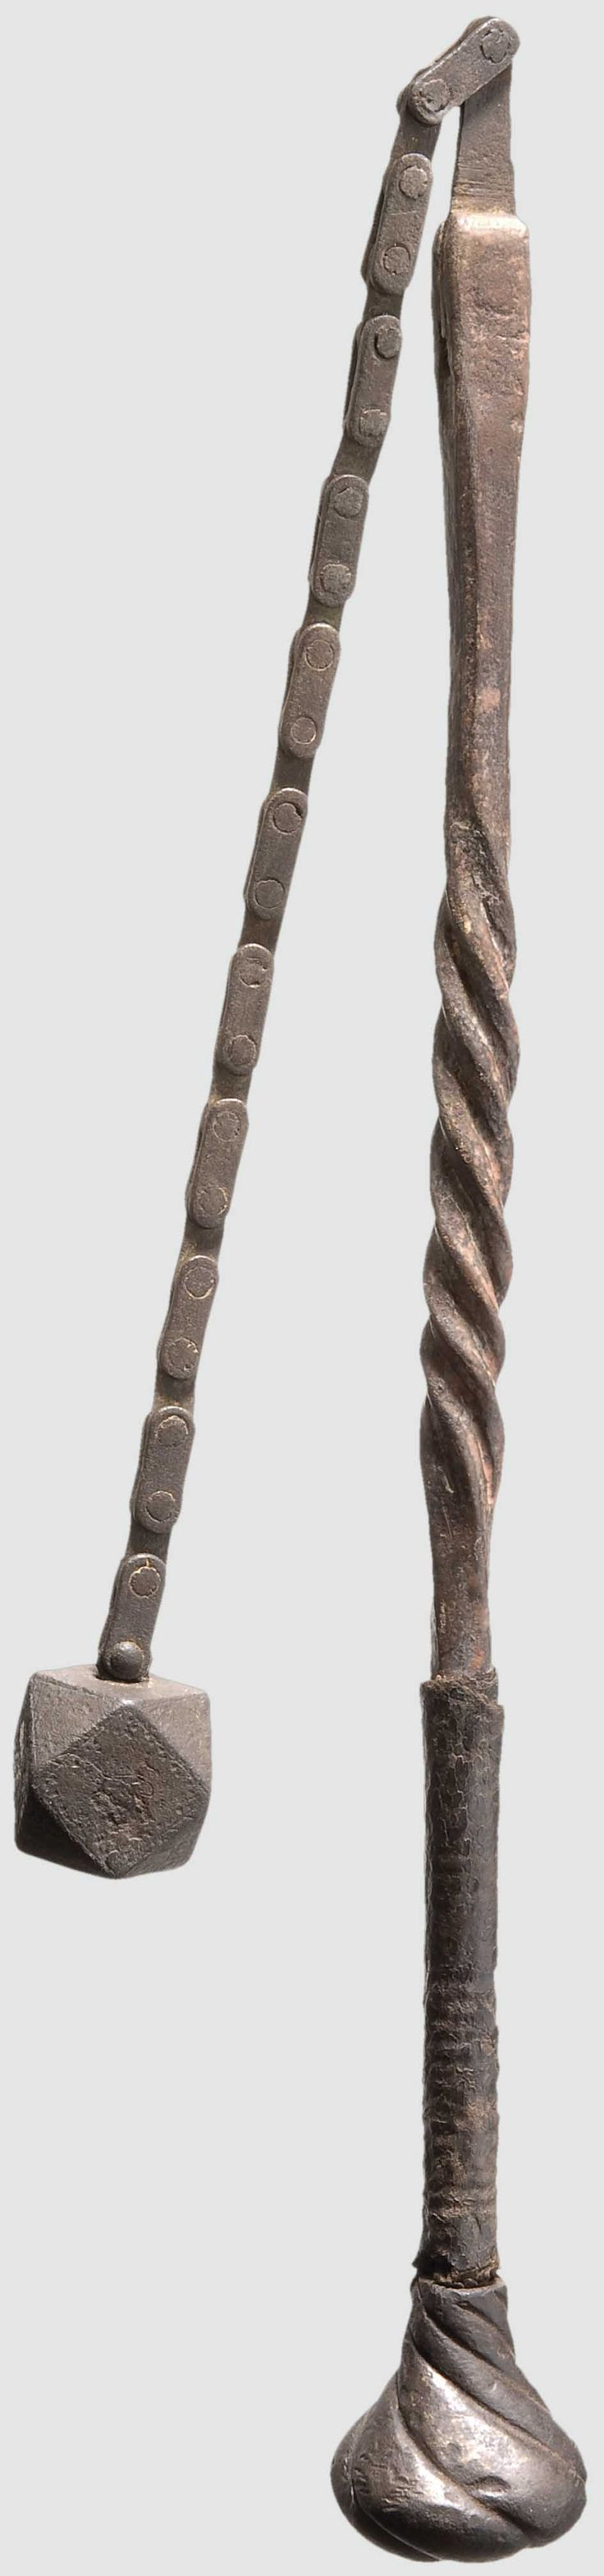 A Southern German battle flail circa 1520/30 Iron, polygonal striking head on a riveted chain. The forged twisted iron shaft retaining the original leather covering with cord underlay and a pommel of a two-handed sword of ca. 1520. Patinated, with vestiges of red lead coating. Shaft length 55 cm. Rare example of a flail weapon from the period of the Peasants' War.